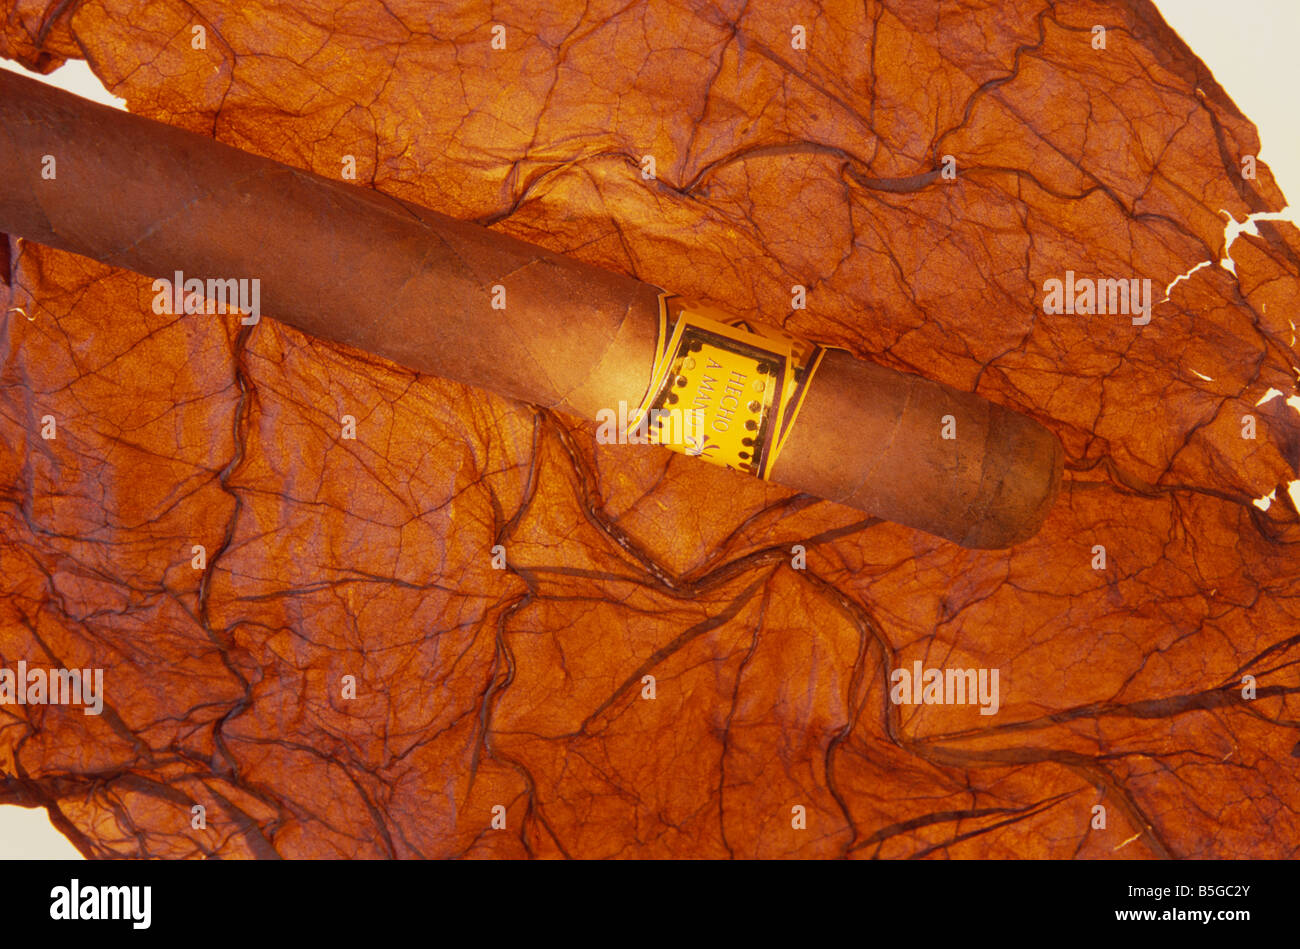 tobacco leaf and cigar - Stock Image